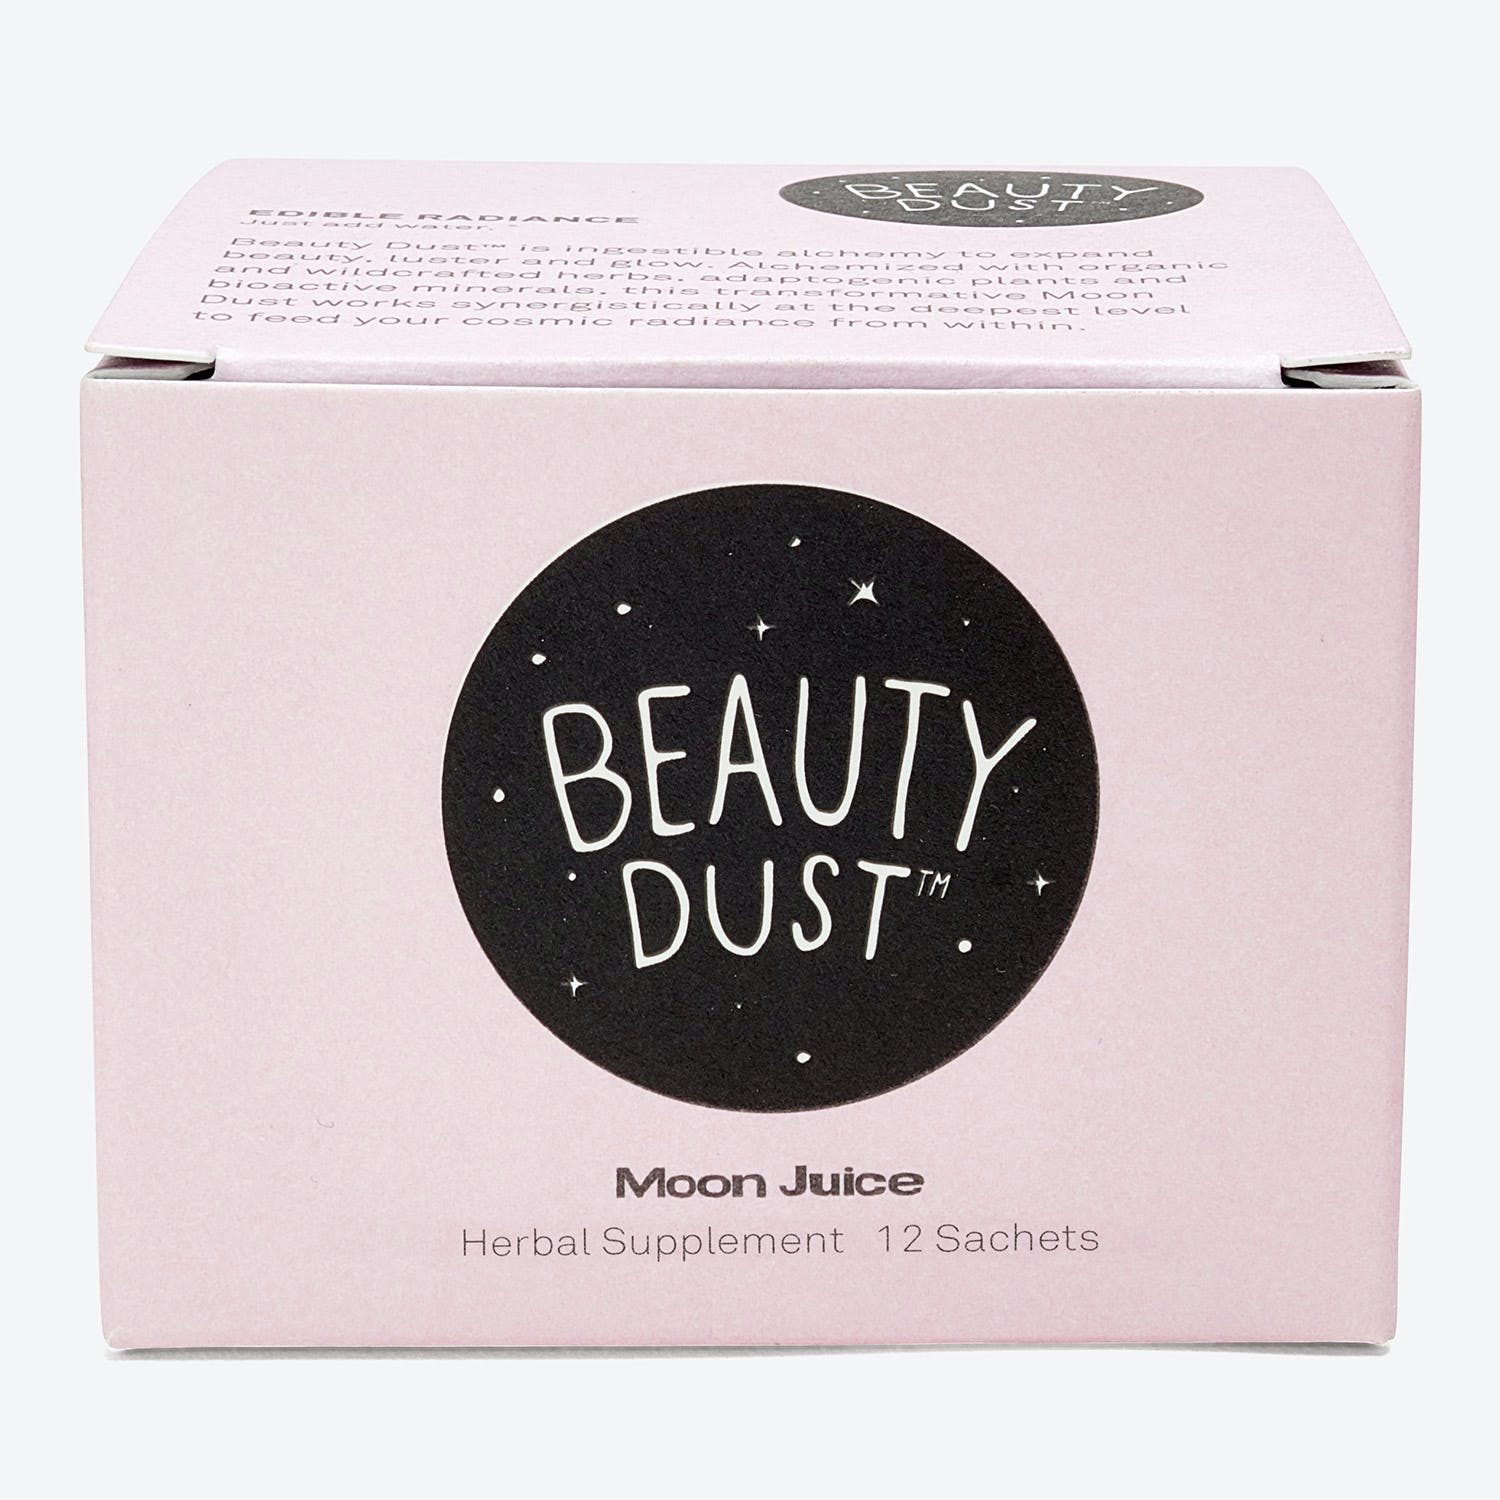 Product Image - Moon Juice Beauty Dust Sachet Box